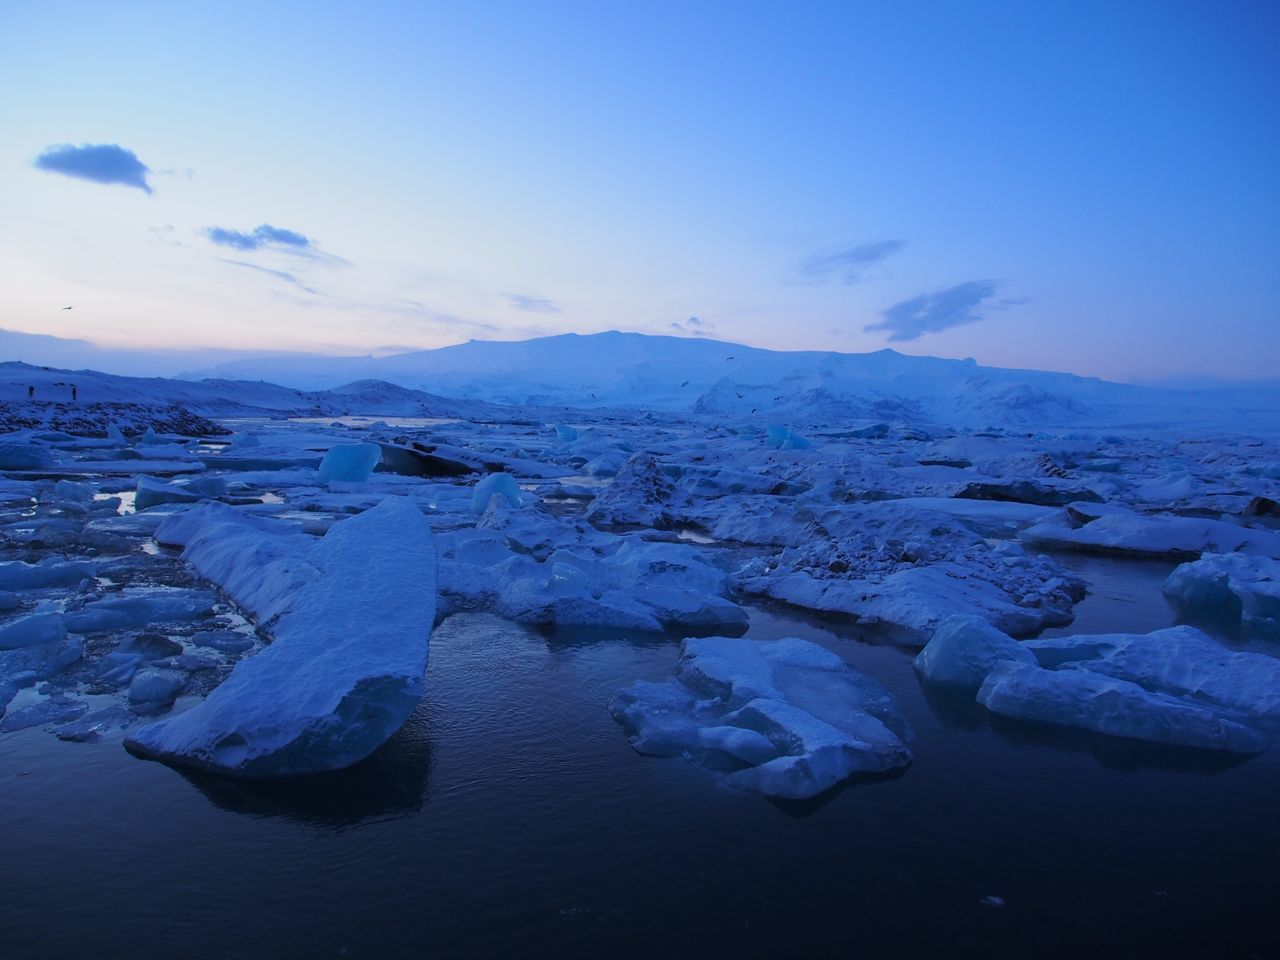 Nature Beauty In Nature Cold Temperature Tranquil Scene Scenics Iceland Blue Water Frozen Winter Idyllic Ice Sky Non-urban Scene No People Outdoors Iceberg Melting Snow Day